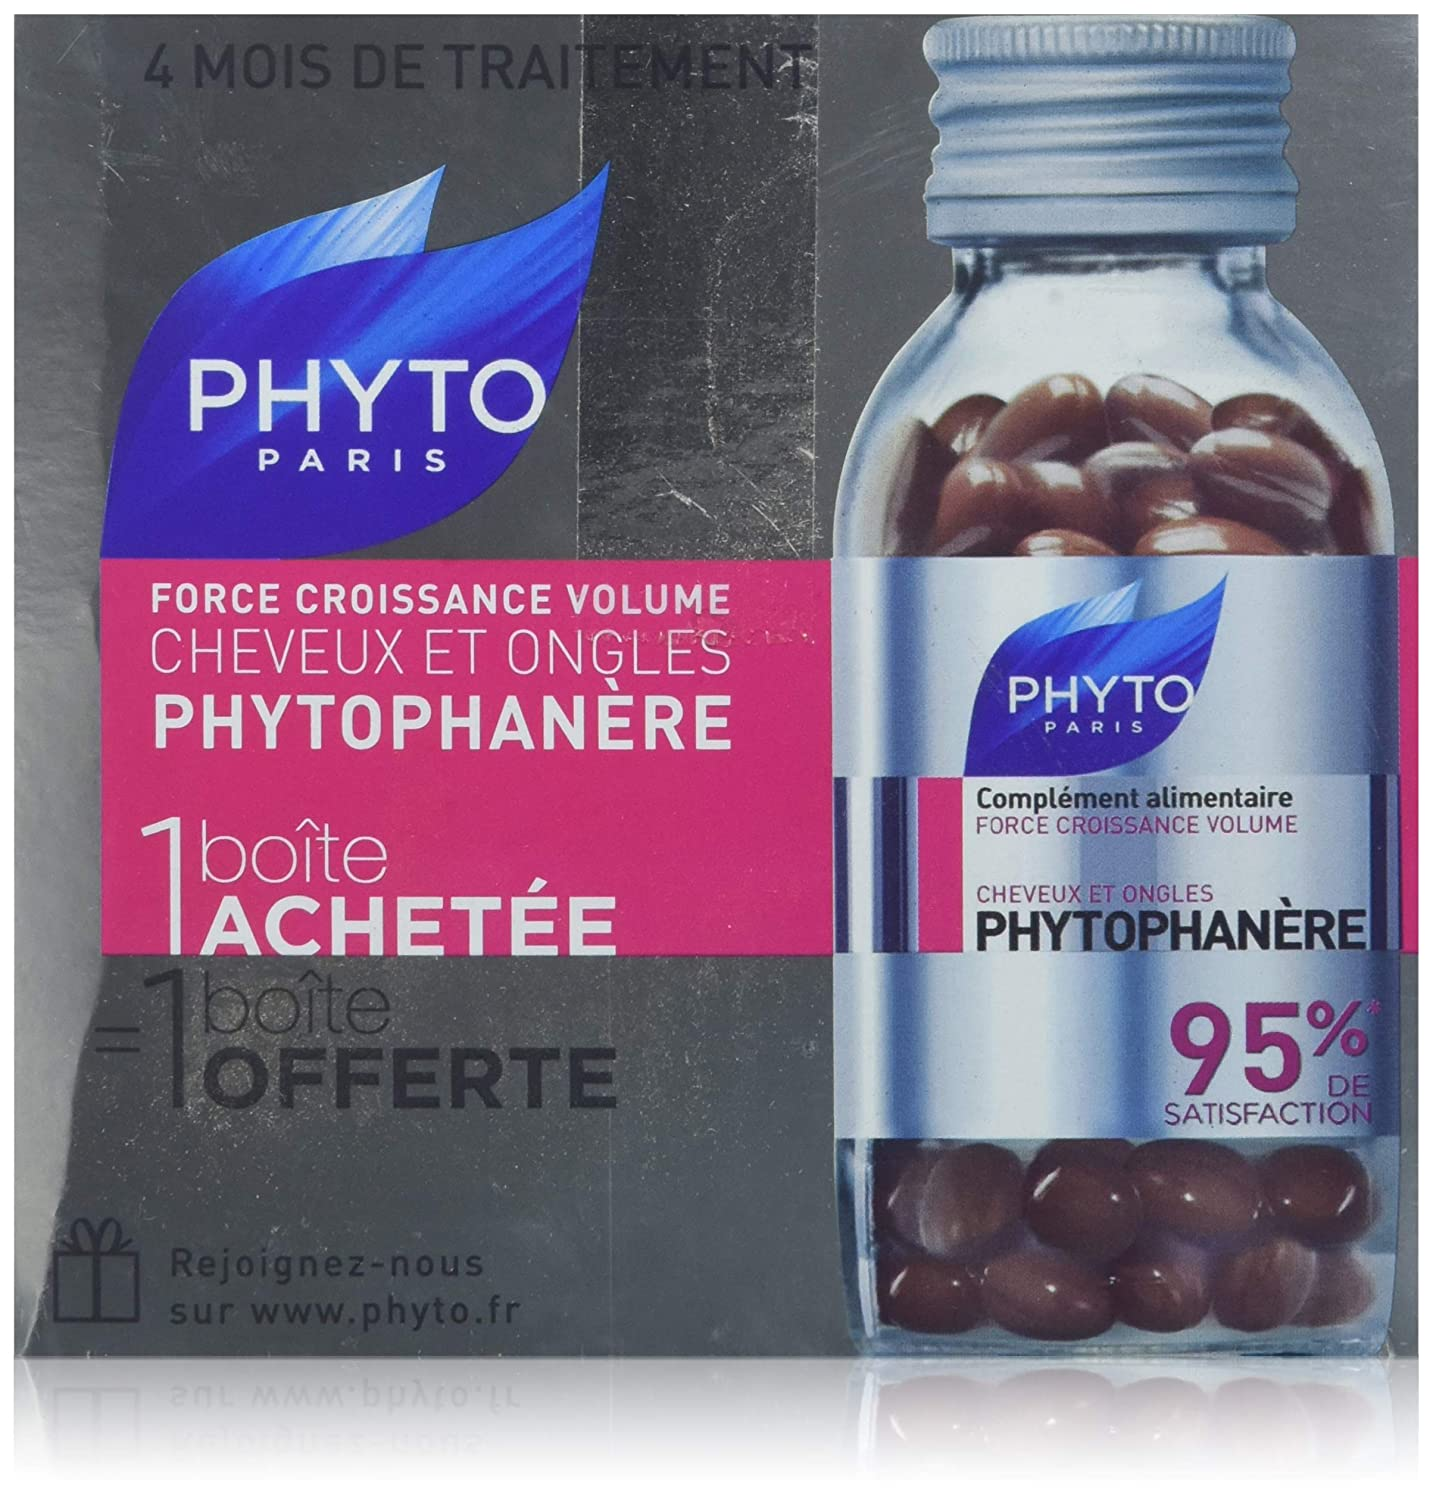 Phyto Phytophan?re Hair and Nails 2 x 120 Gel-Caps HealthCentre 3448